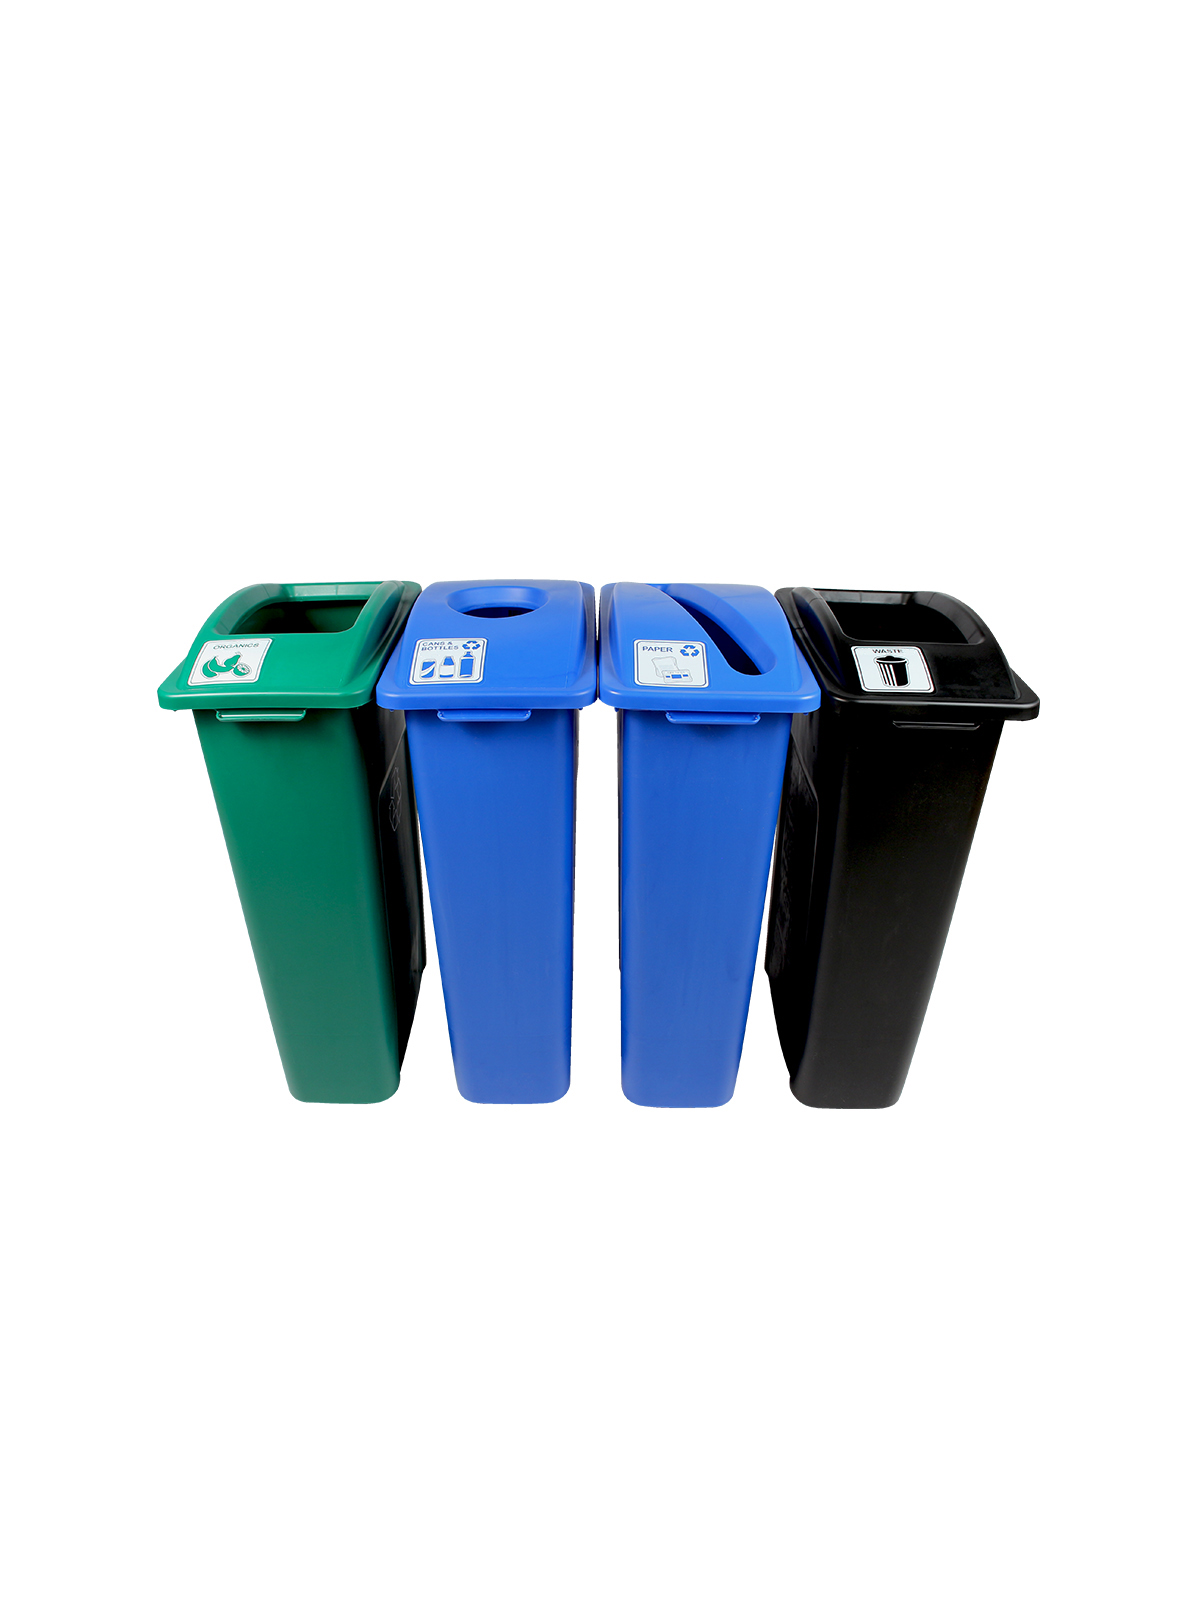 WASTE WATCHER - Quad - Cans & Bottles-Papers-Organics-Waste - Circle-Slot-Full - Blue-Blue-Green-Black